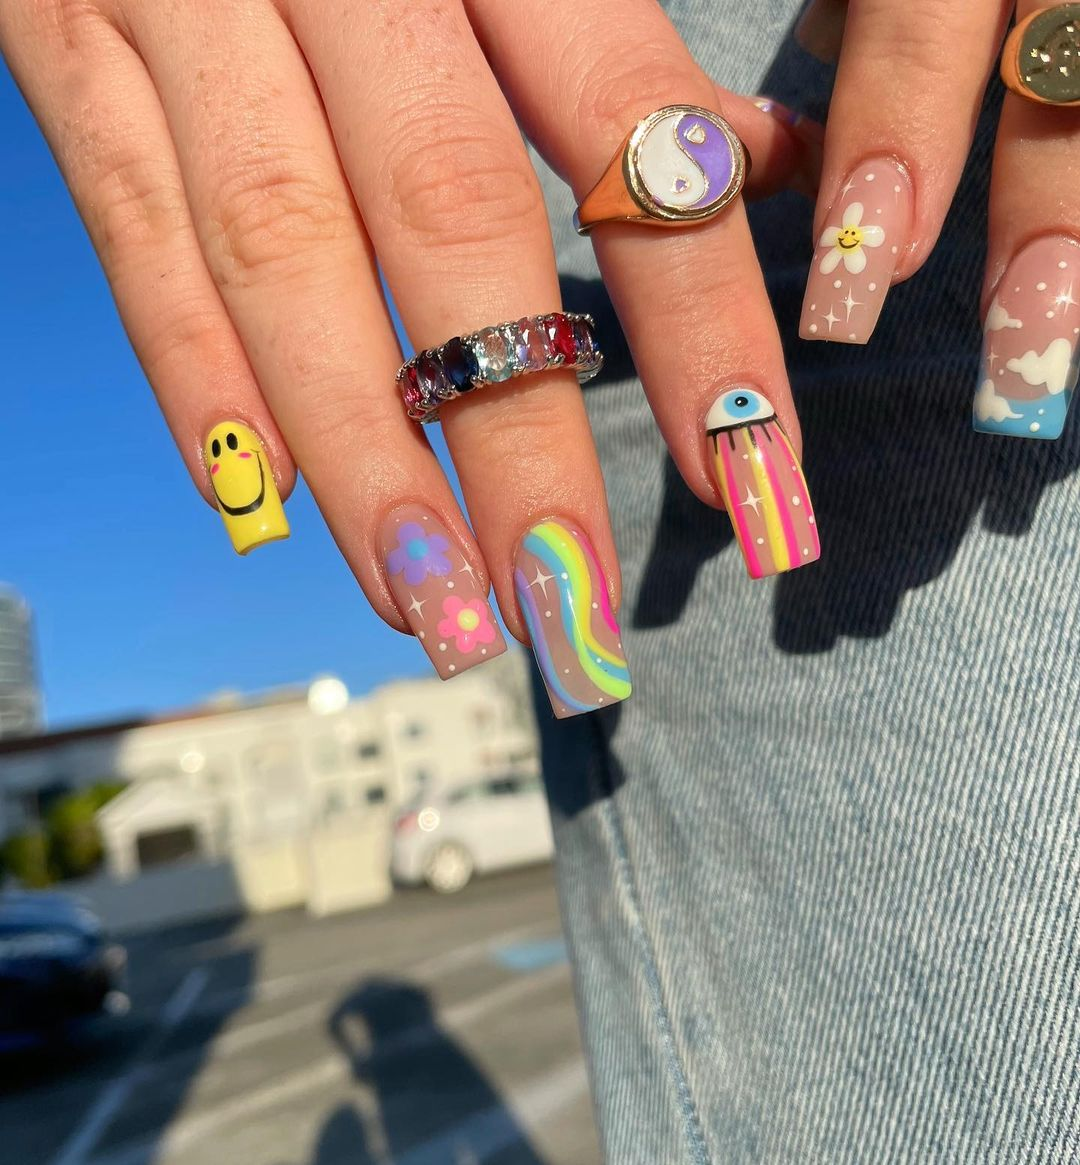 Colorful rainbow square nails with smiley face and flowers